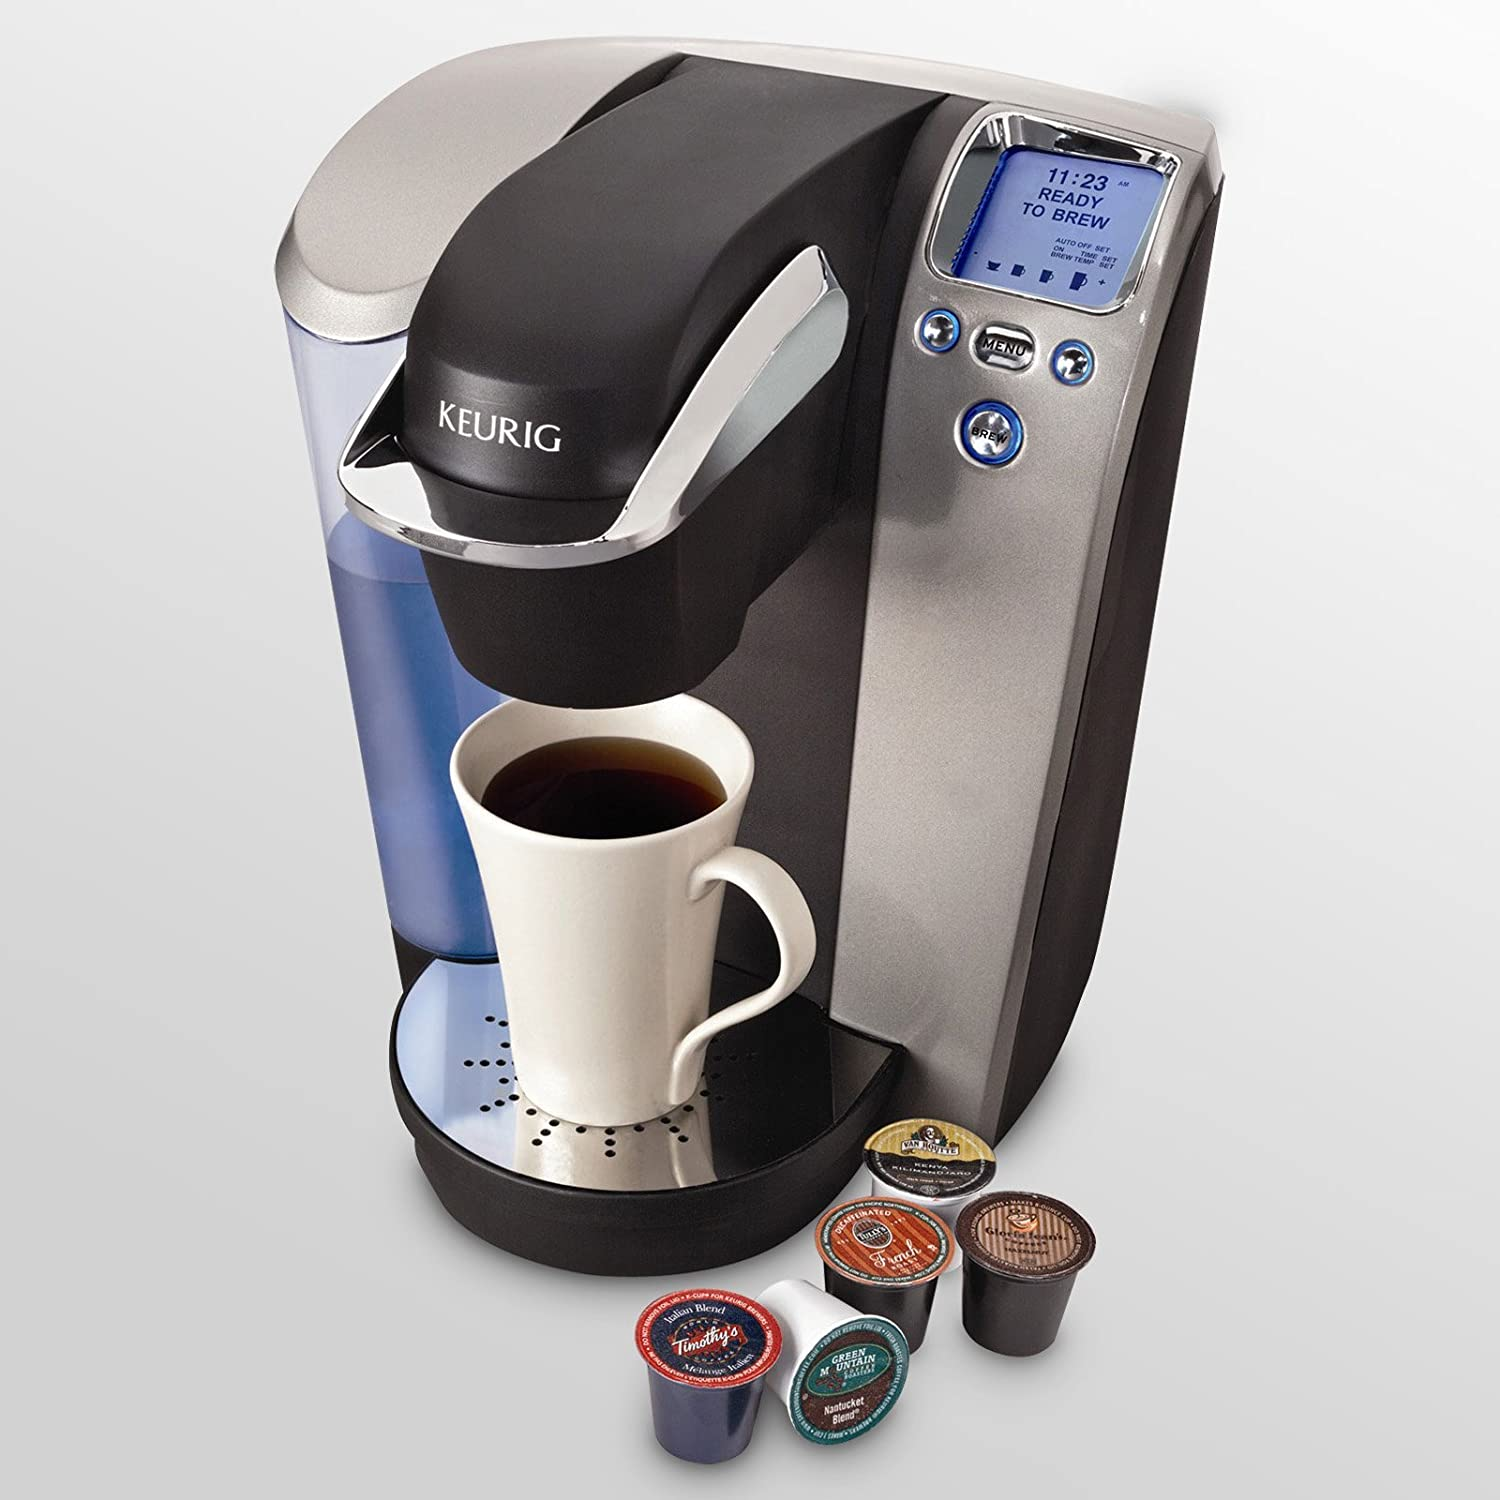 Keurig vs Tassimo Single Cup Coffee Maker Comparison - us31